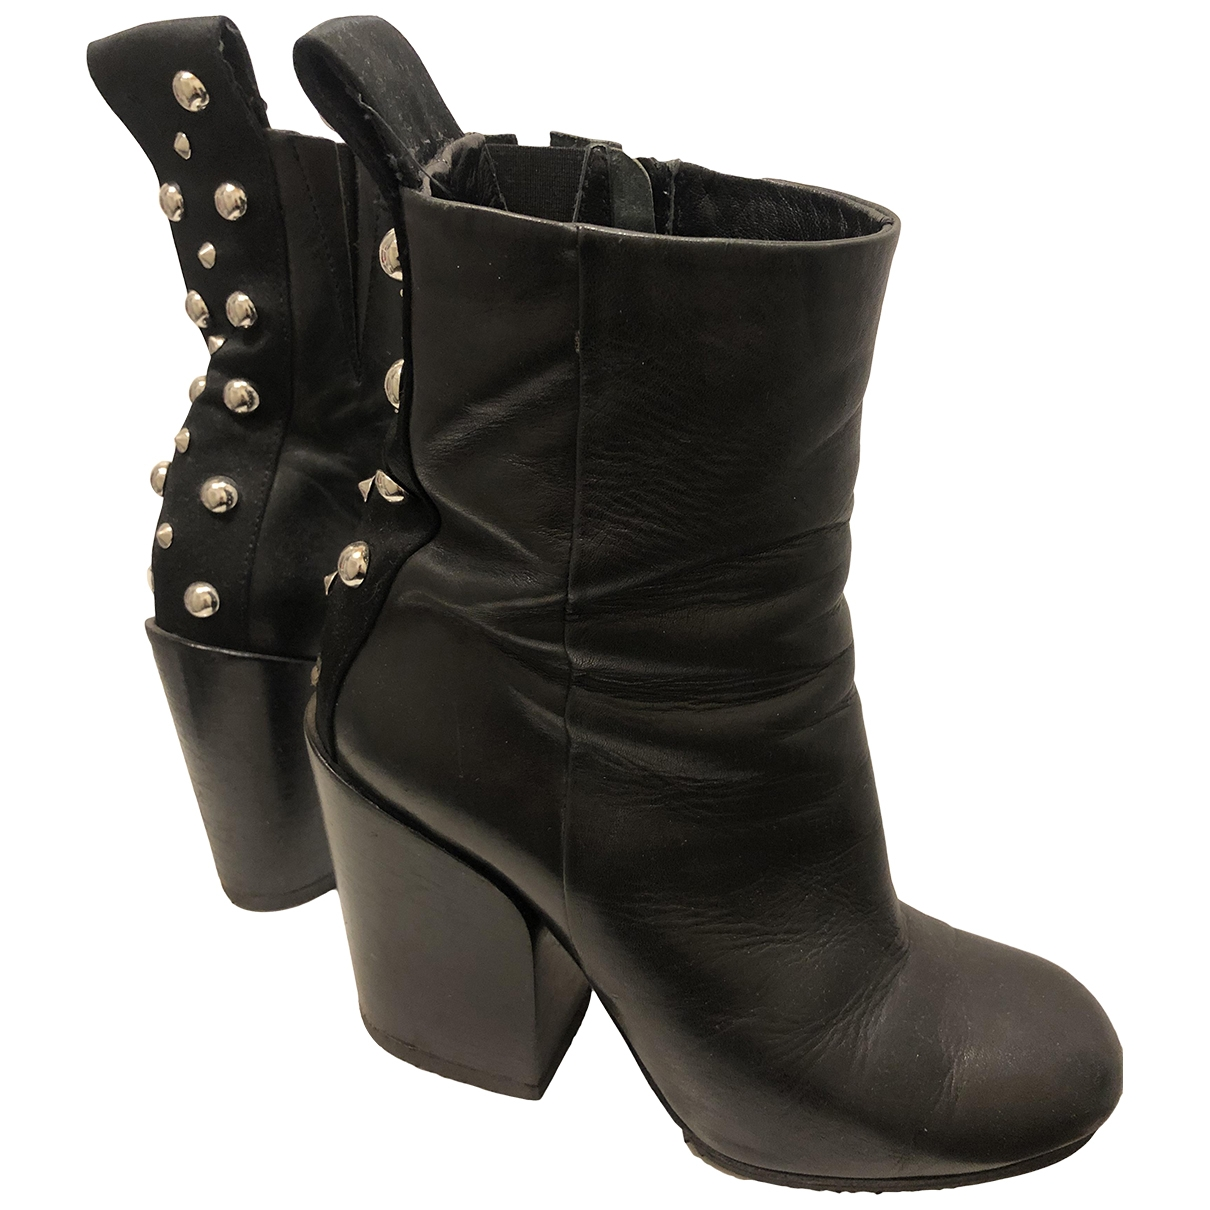 Mcq \N Black Leather Boots for Women 38 EU